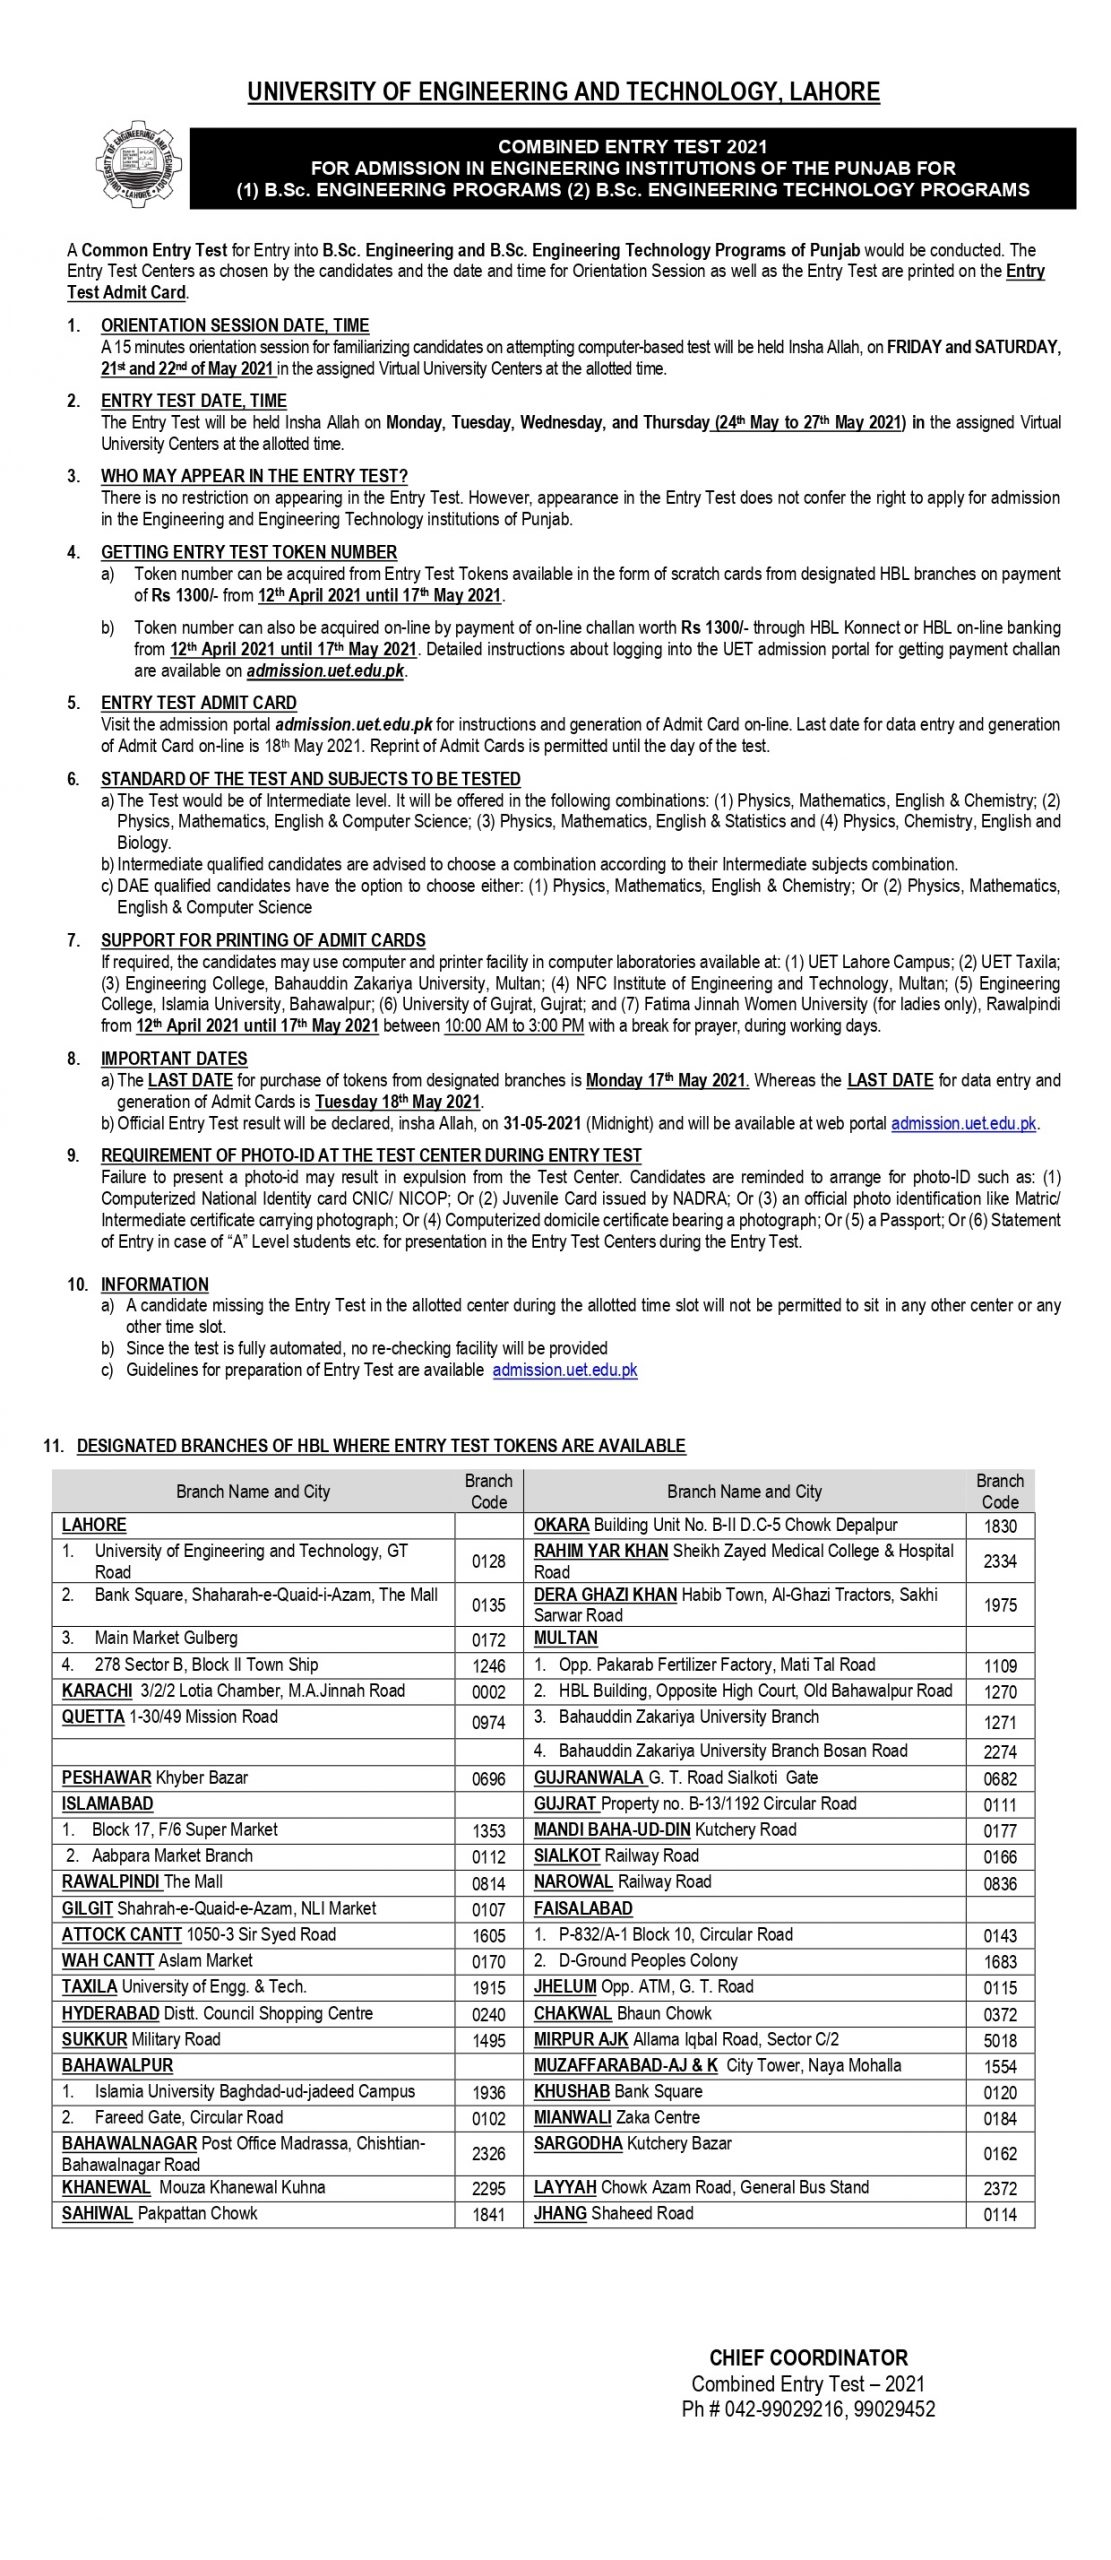 UET Entry Test 2021 Registration forms Online Submission and Required Documents